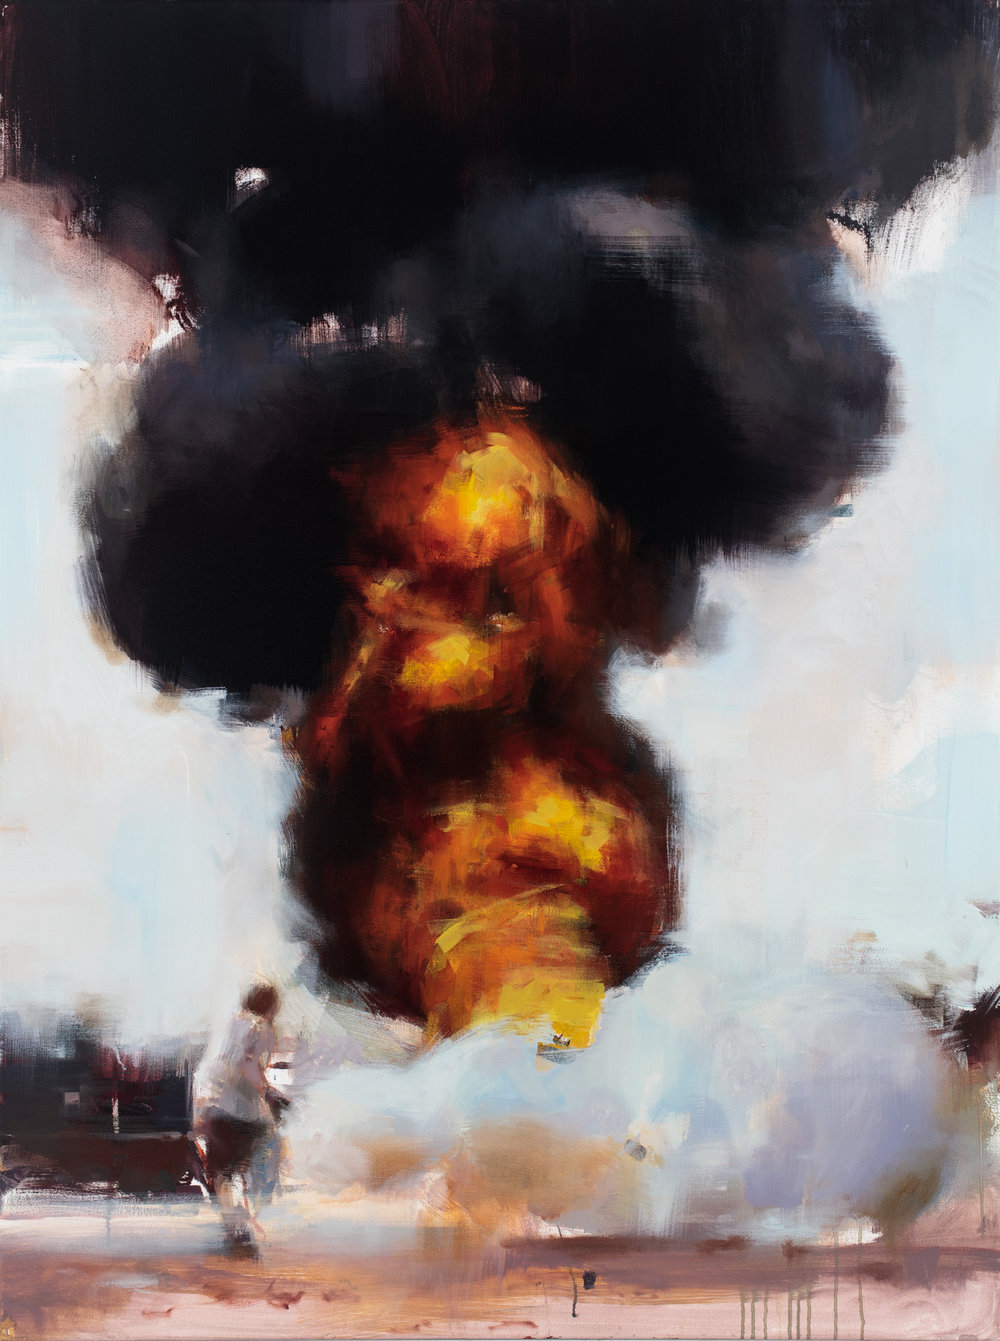 """ The Fall of Sector X""  2015,  40"" x 30"" (100 x 76 cm), oil on linen."